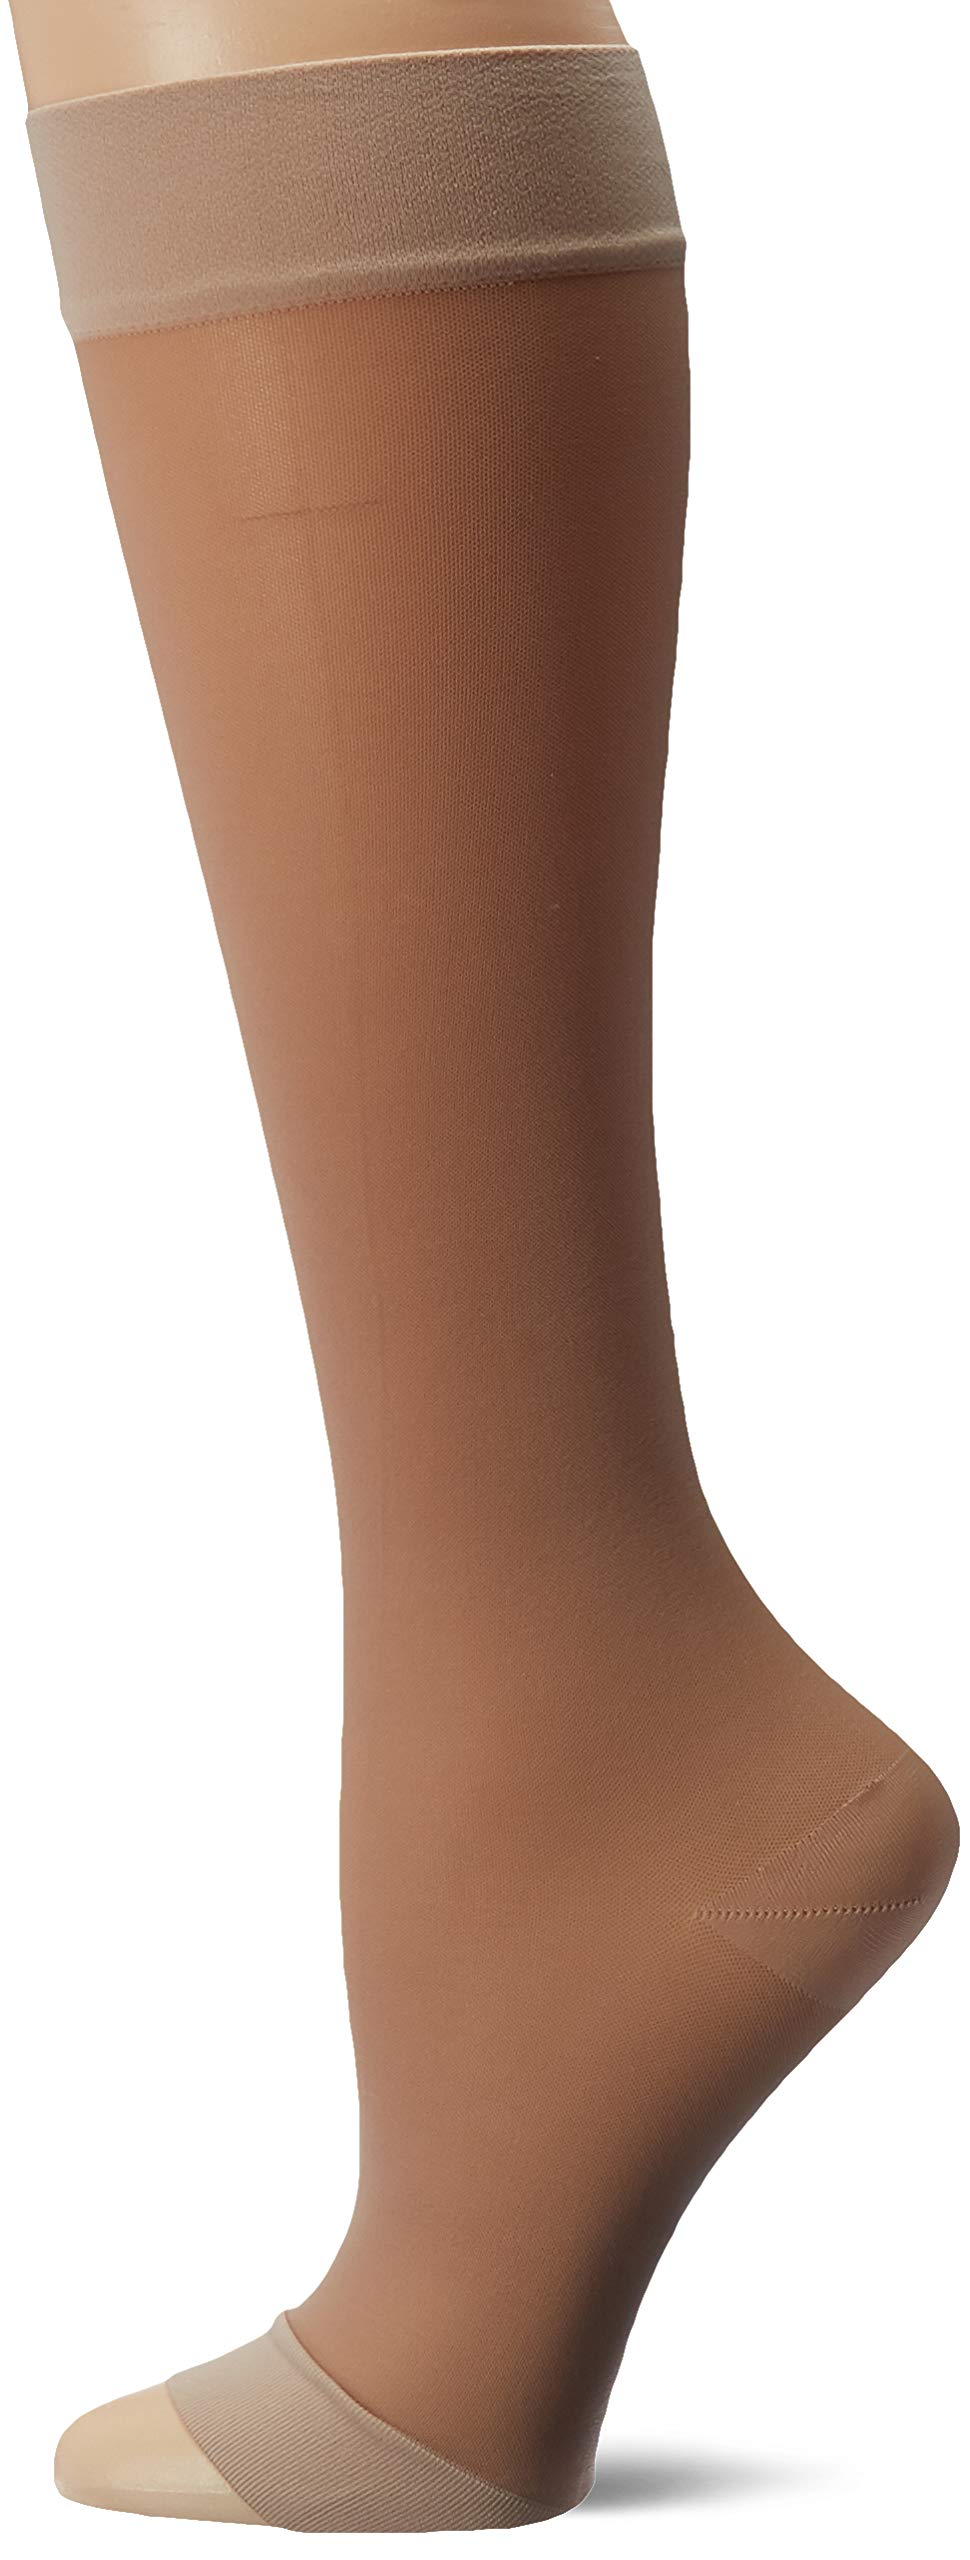 Truform Compression 15-20 mmHg Sheer Knee High Open Toe Stockings Nude, Large, 2 Count